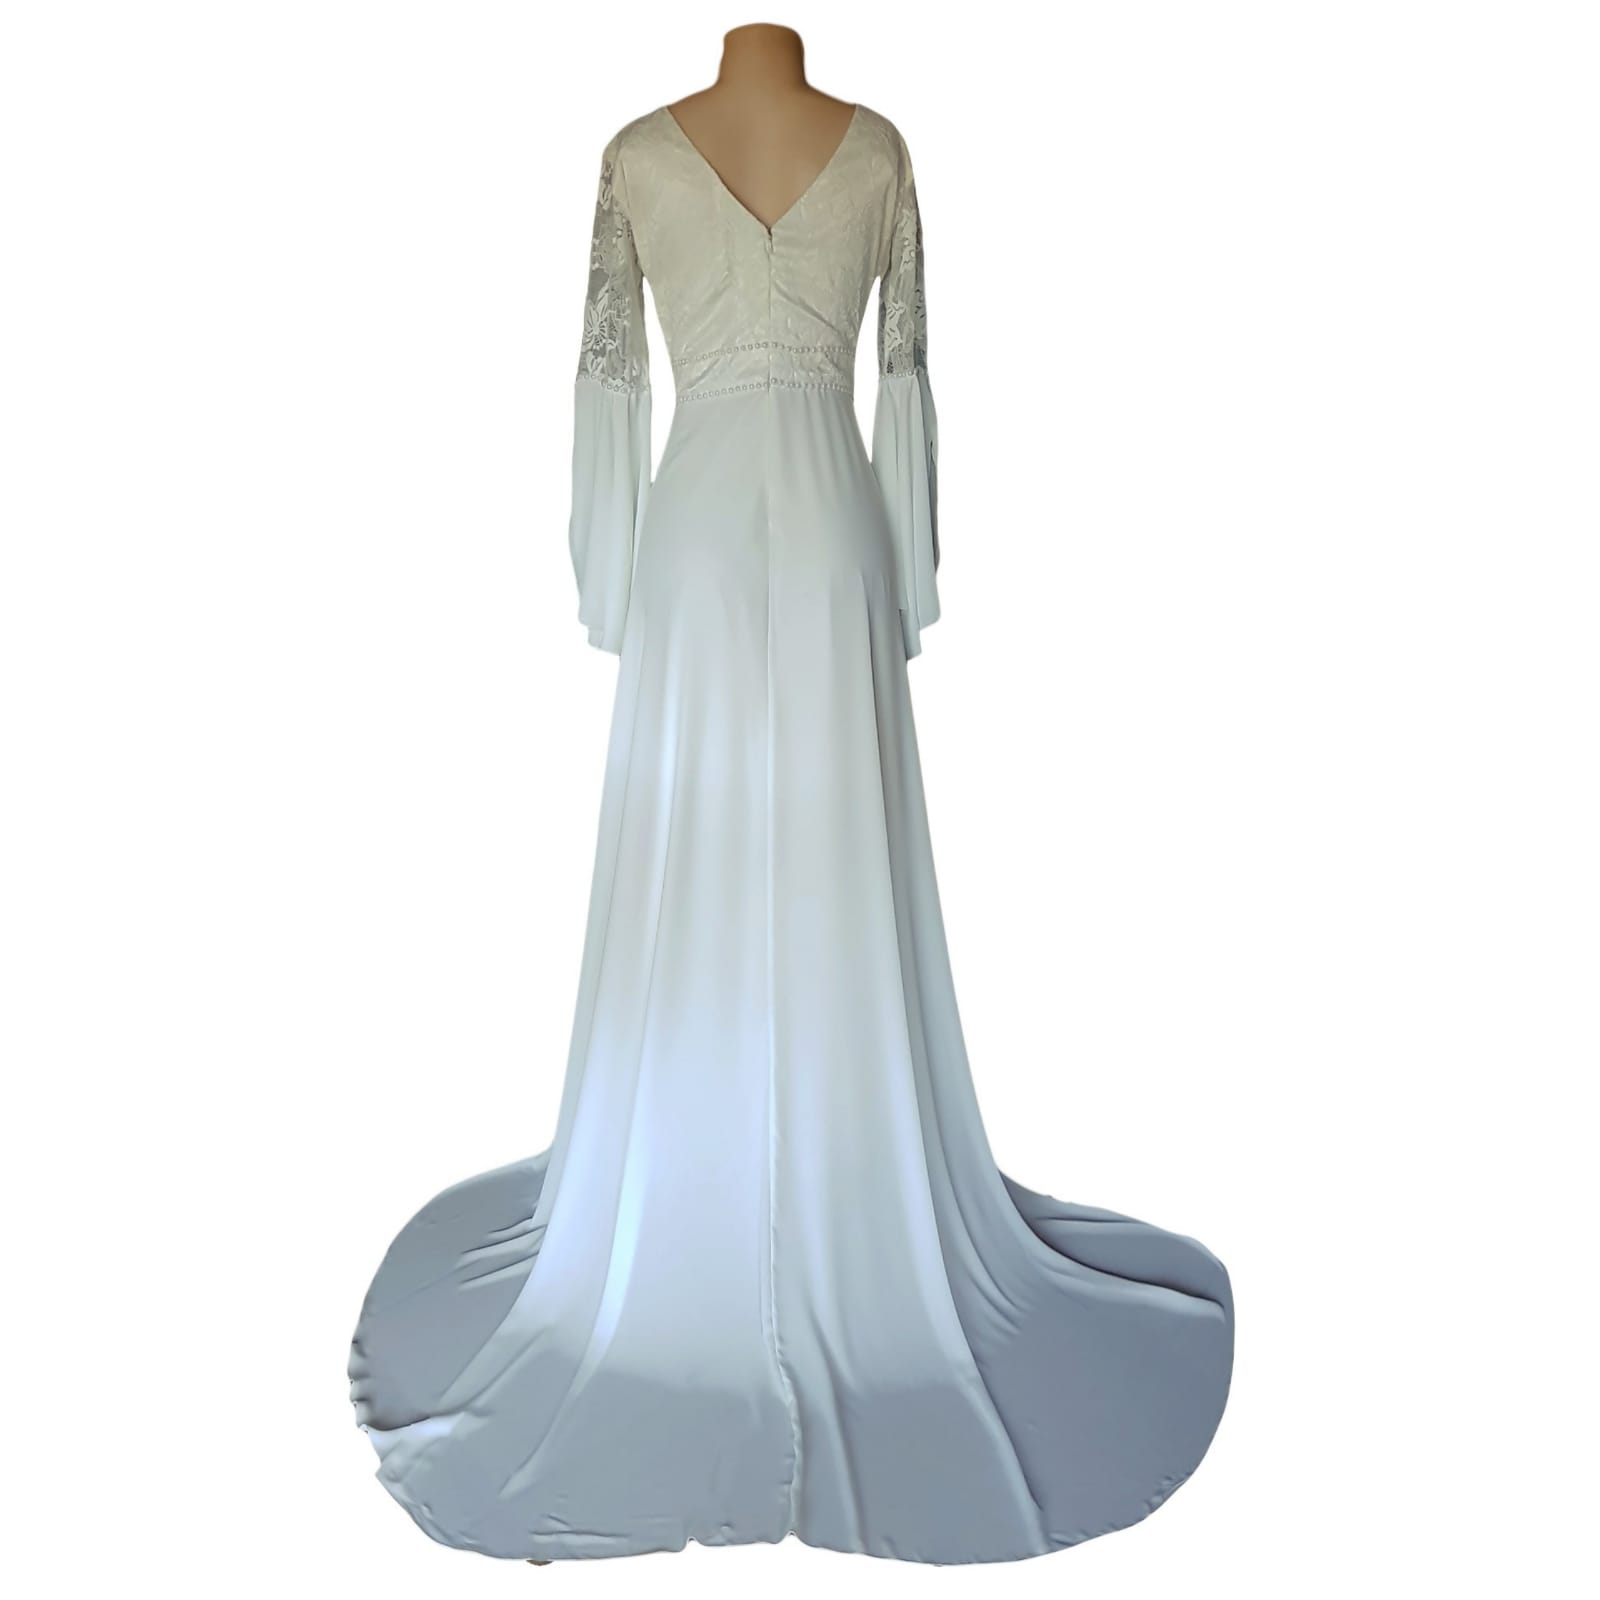 White flowy lace bodice wedding dress 7 white flowy lace bodice wedding dress. With bell sleeve and train. Sleeve and belt detailed with pearls. Stunnning wedding dress awesome for a beach wedding.